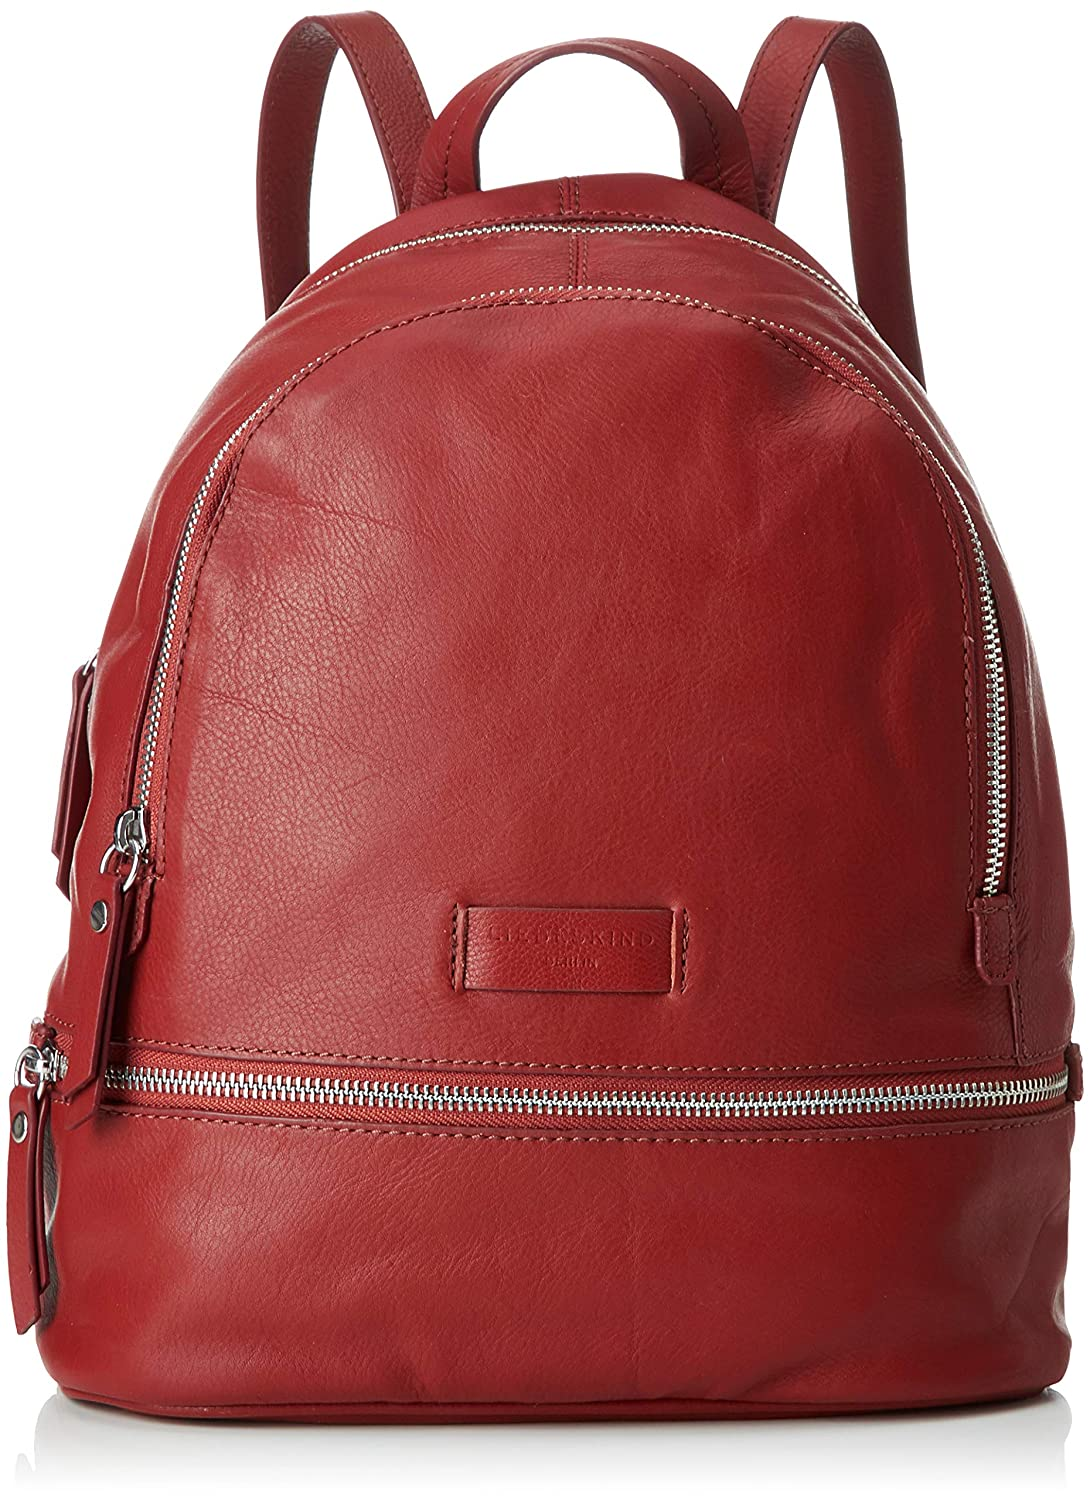 A Berlin Lotta Liebeskind Essential Zainetto Backpack Borse Small SzwP6qCY